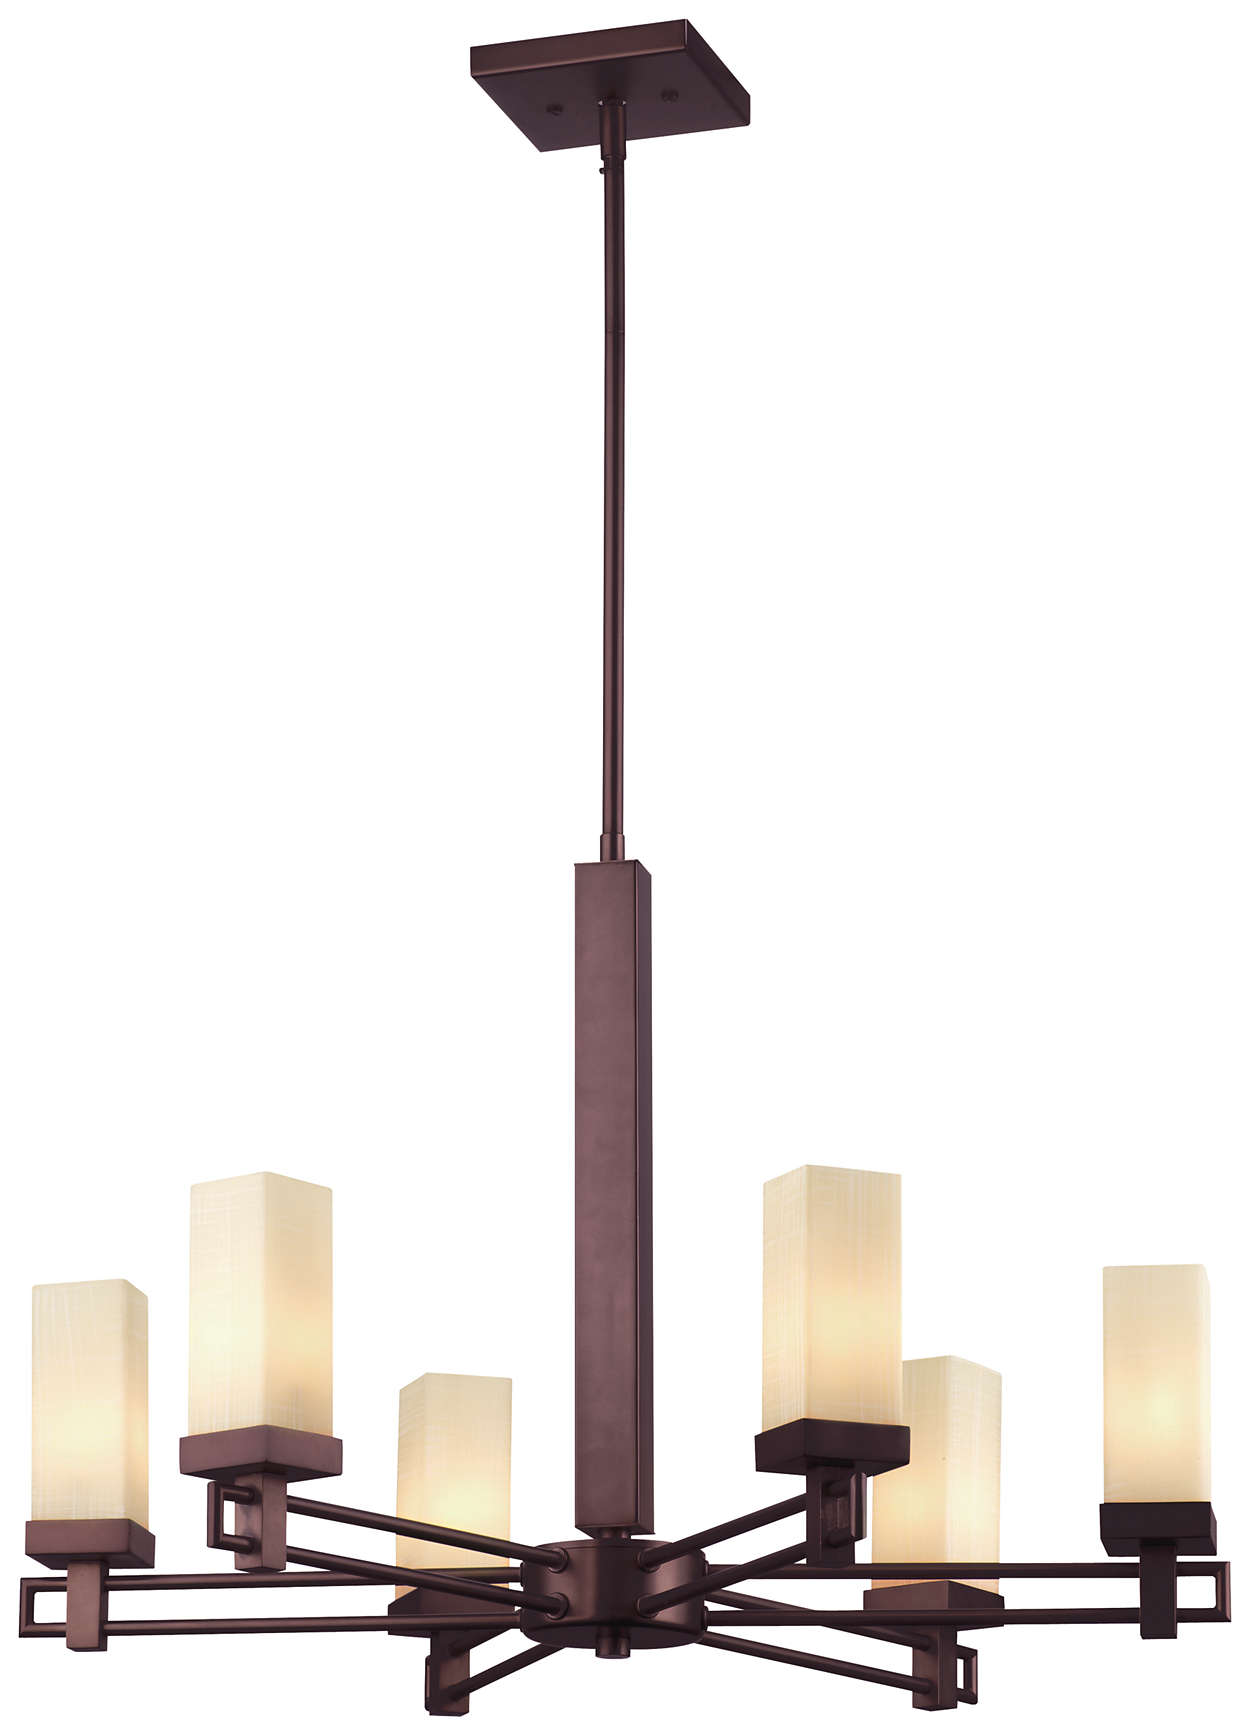 Casa 6-light Chandelier in Merlot Bronze finish